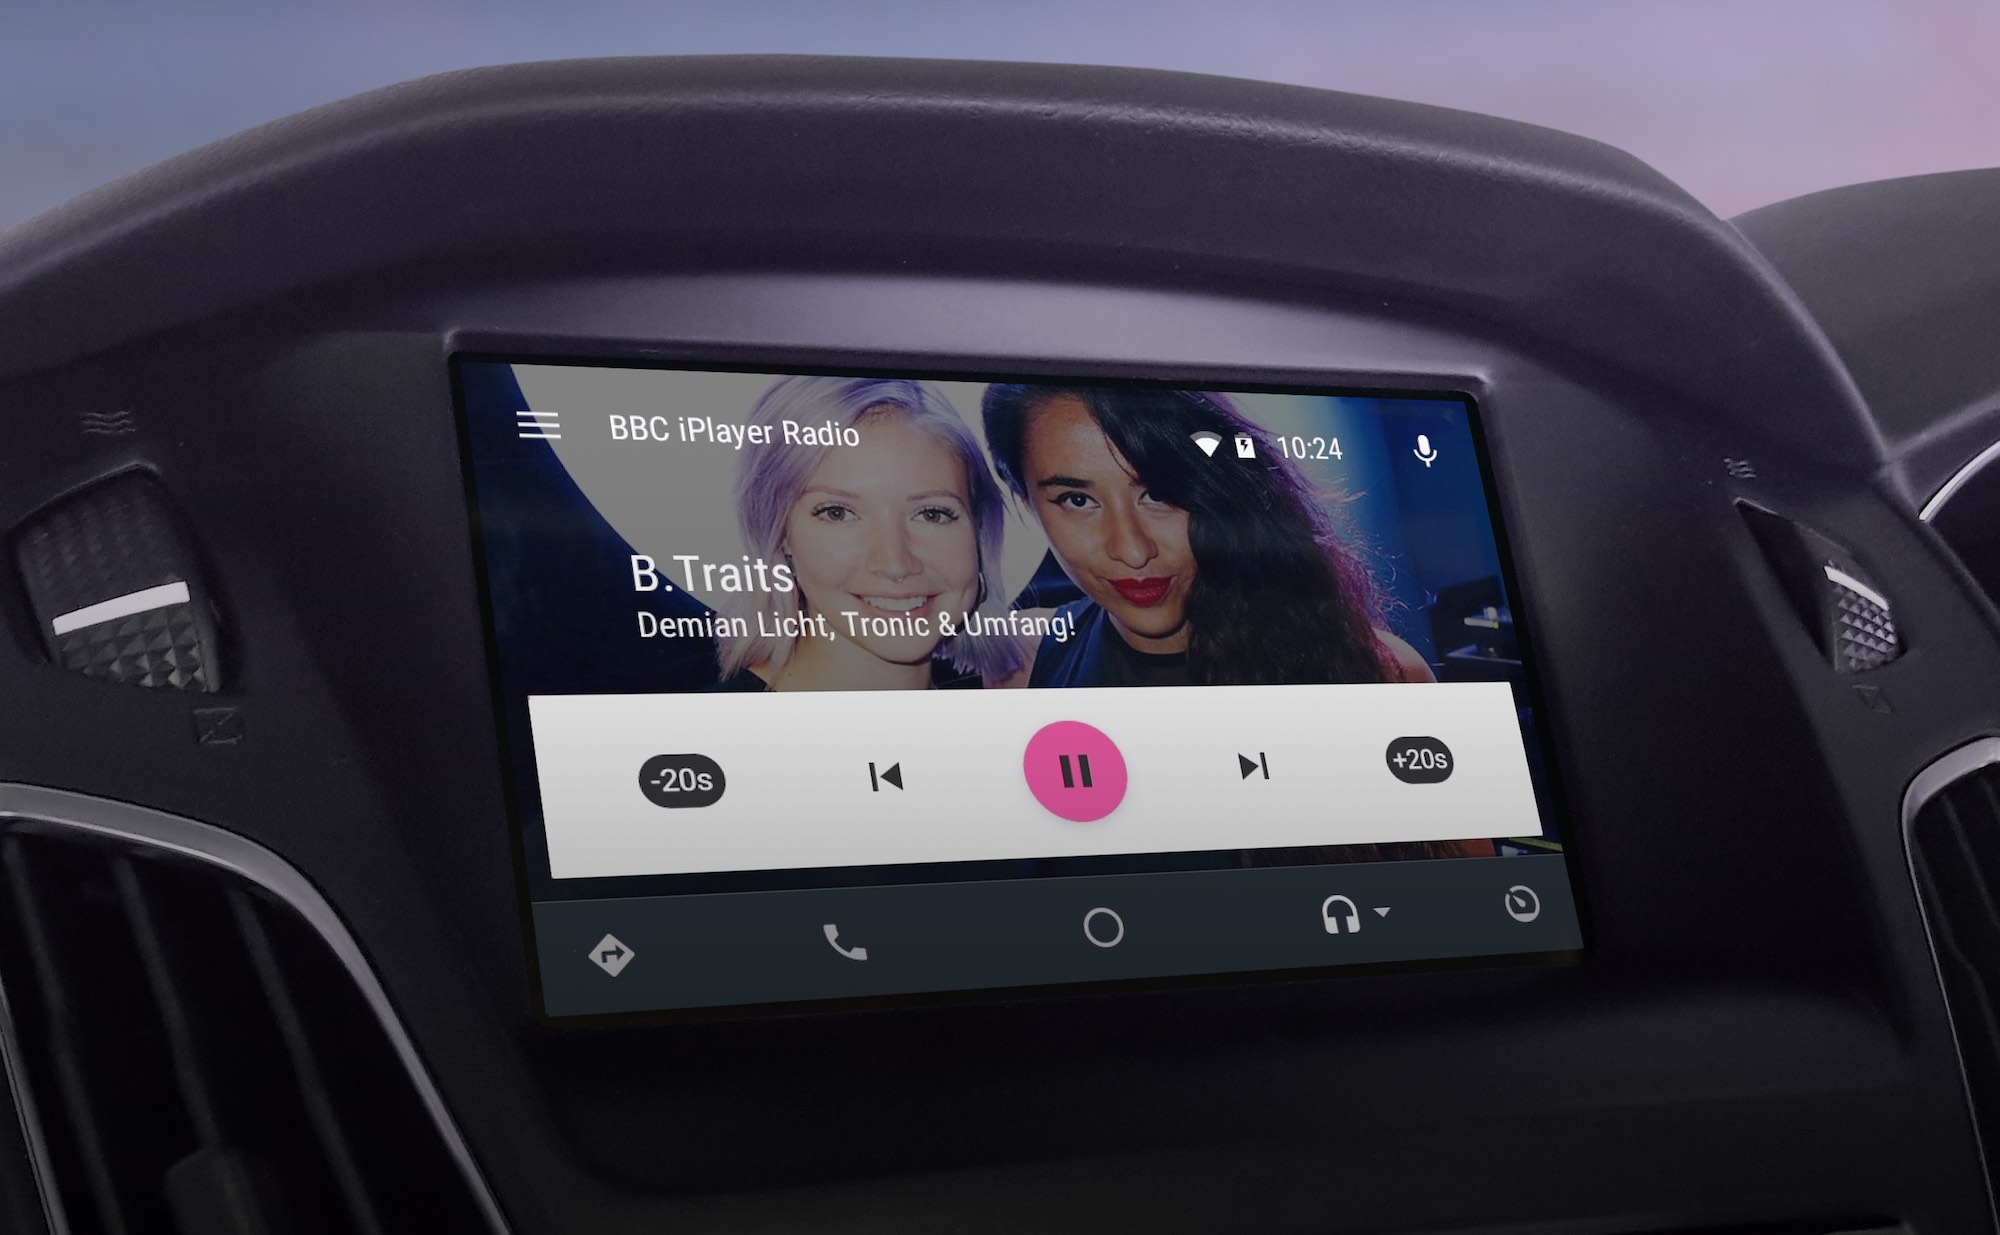 BBC launches iPlayer Radio app for Android Auto and Apple